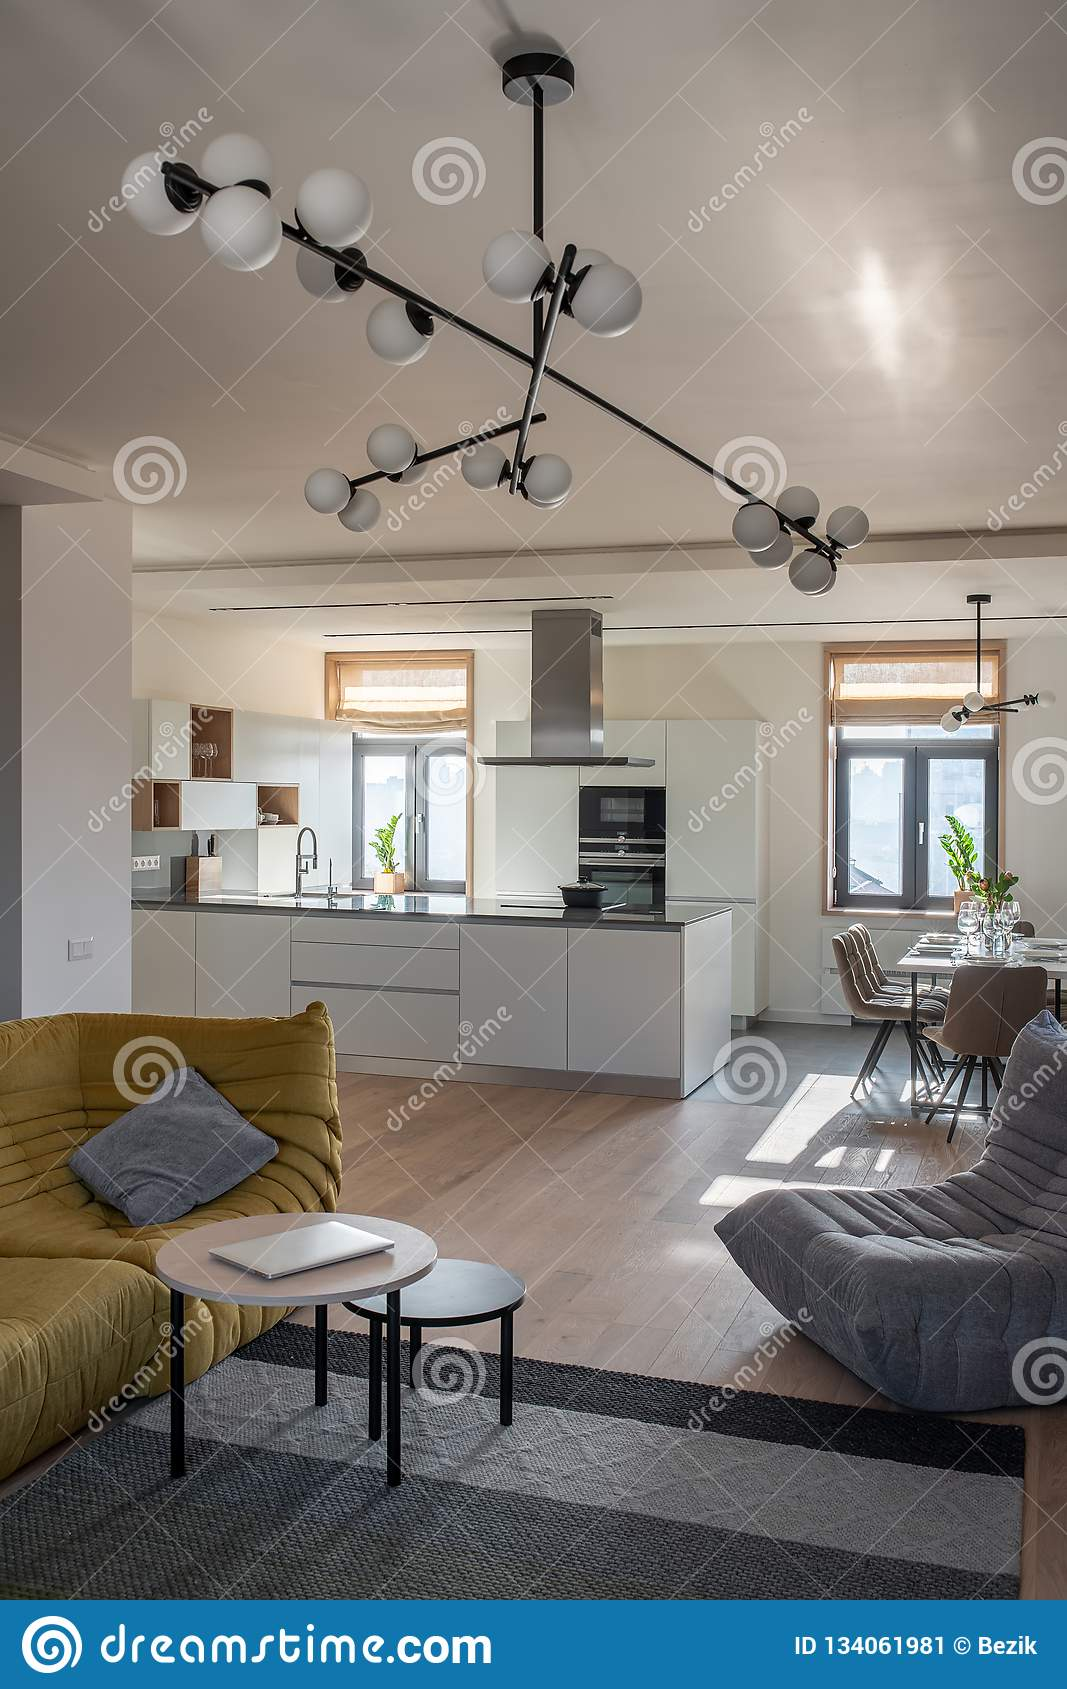 Sunny Modern Interior With White Walls And Kitchen Zone Stock Image Image Of Daylight Comfortable 134061981